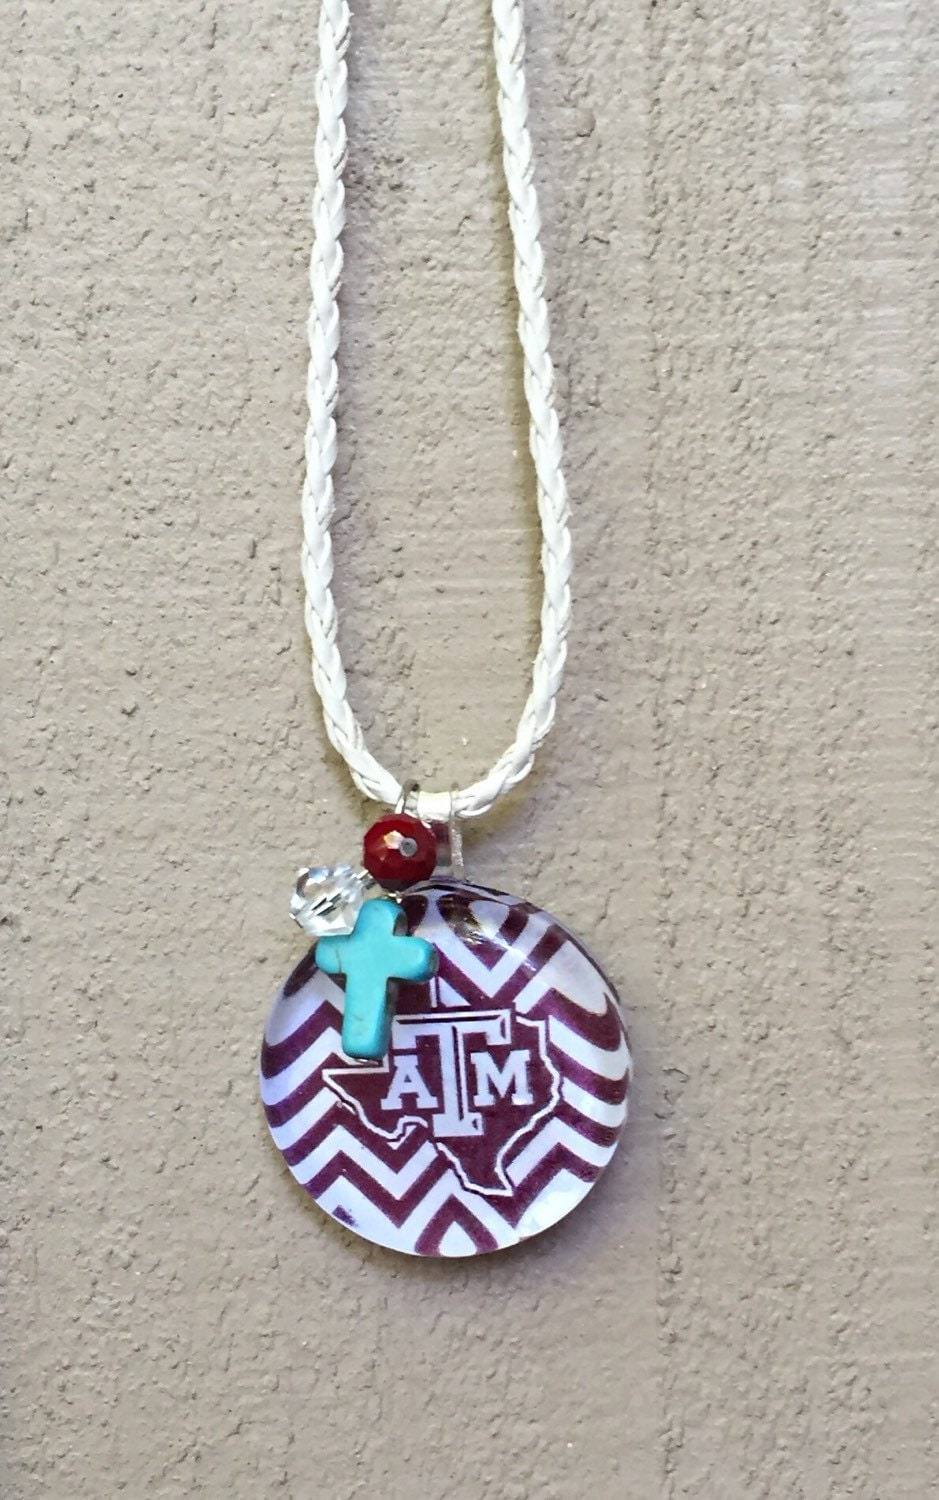 aggie necklace texas a m jewelry gameday maroon white chevron